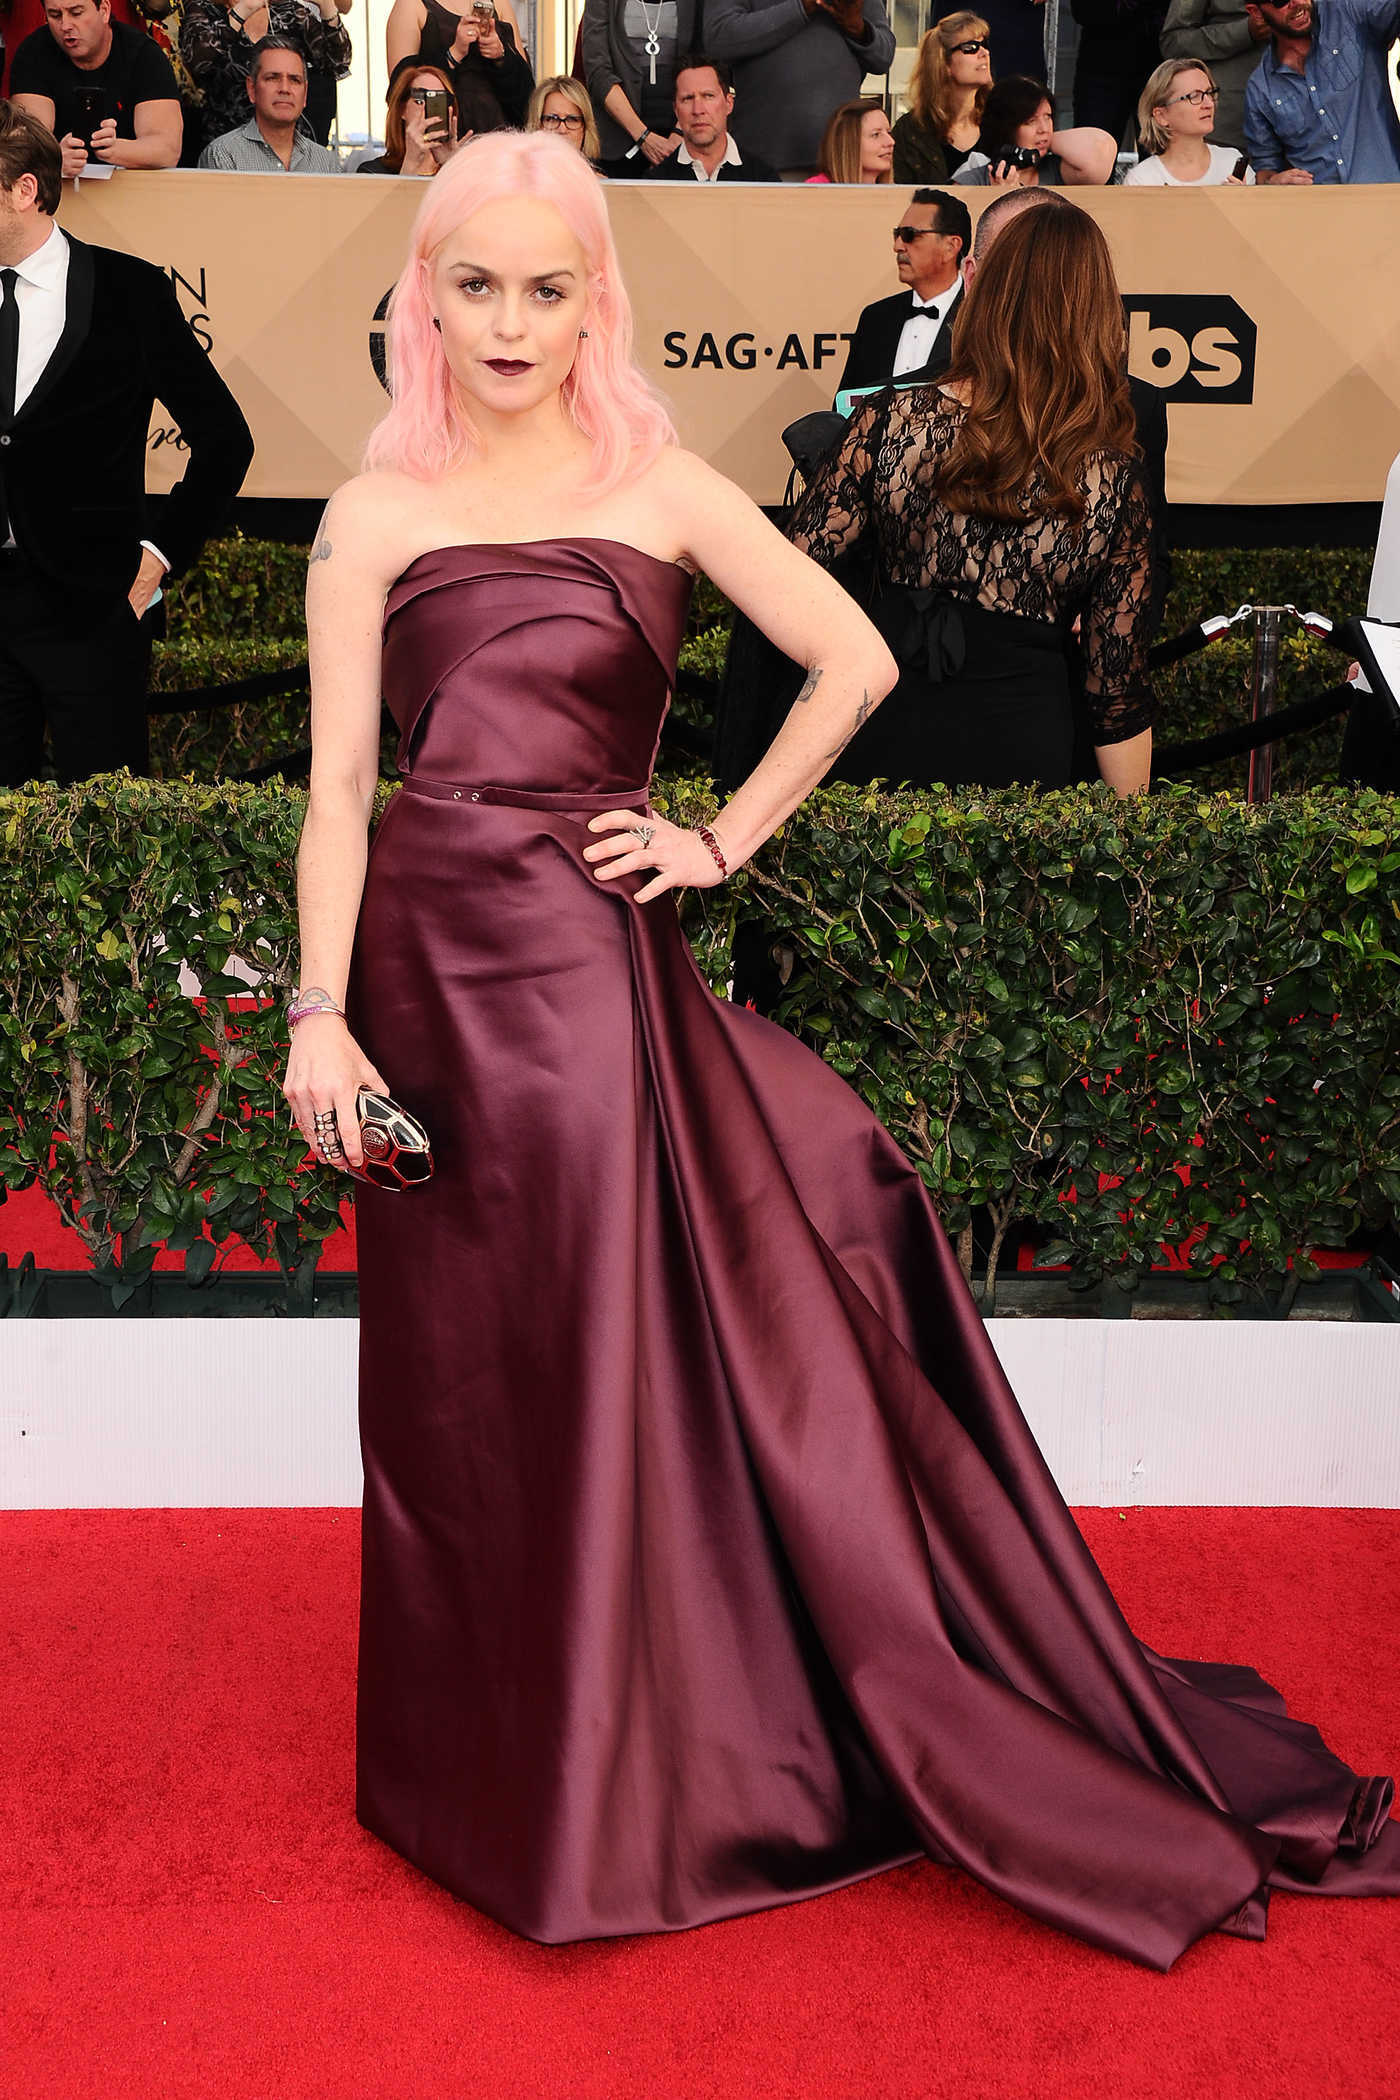 Taryn Manning at the 23rd Annual Screen Actors Guild Awards in Los Angeles 01/29/2017